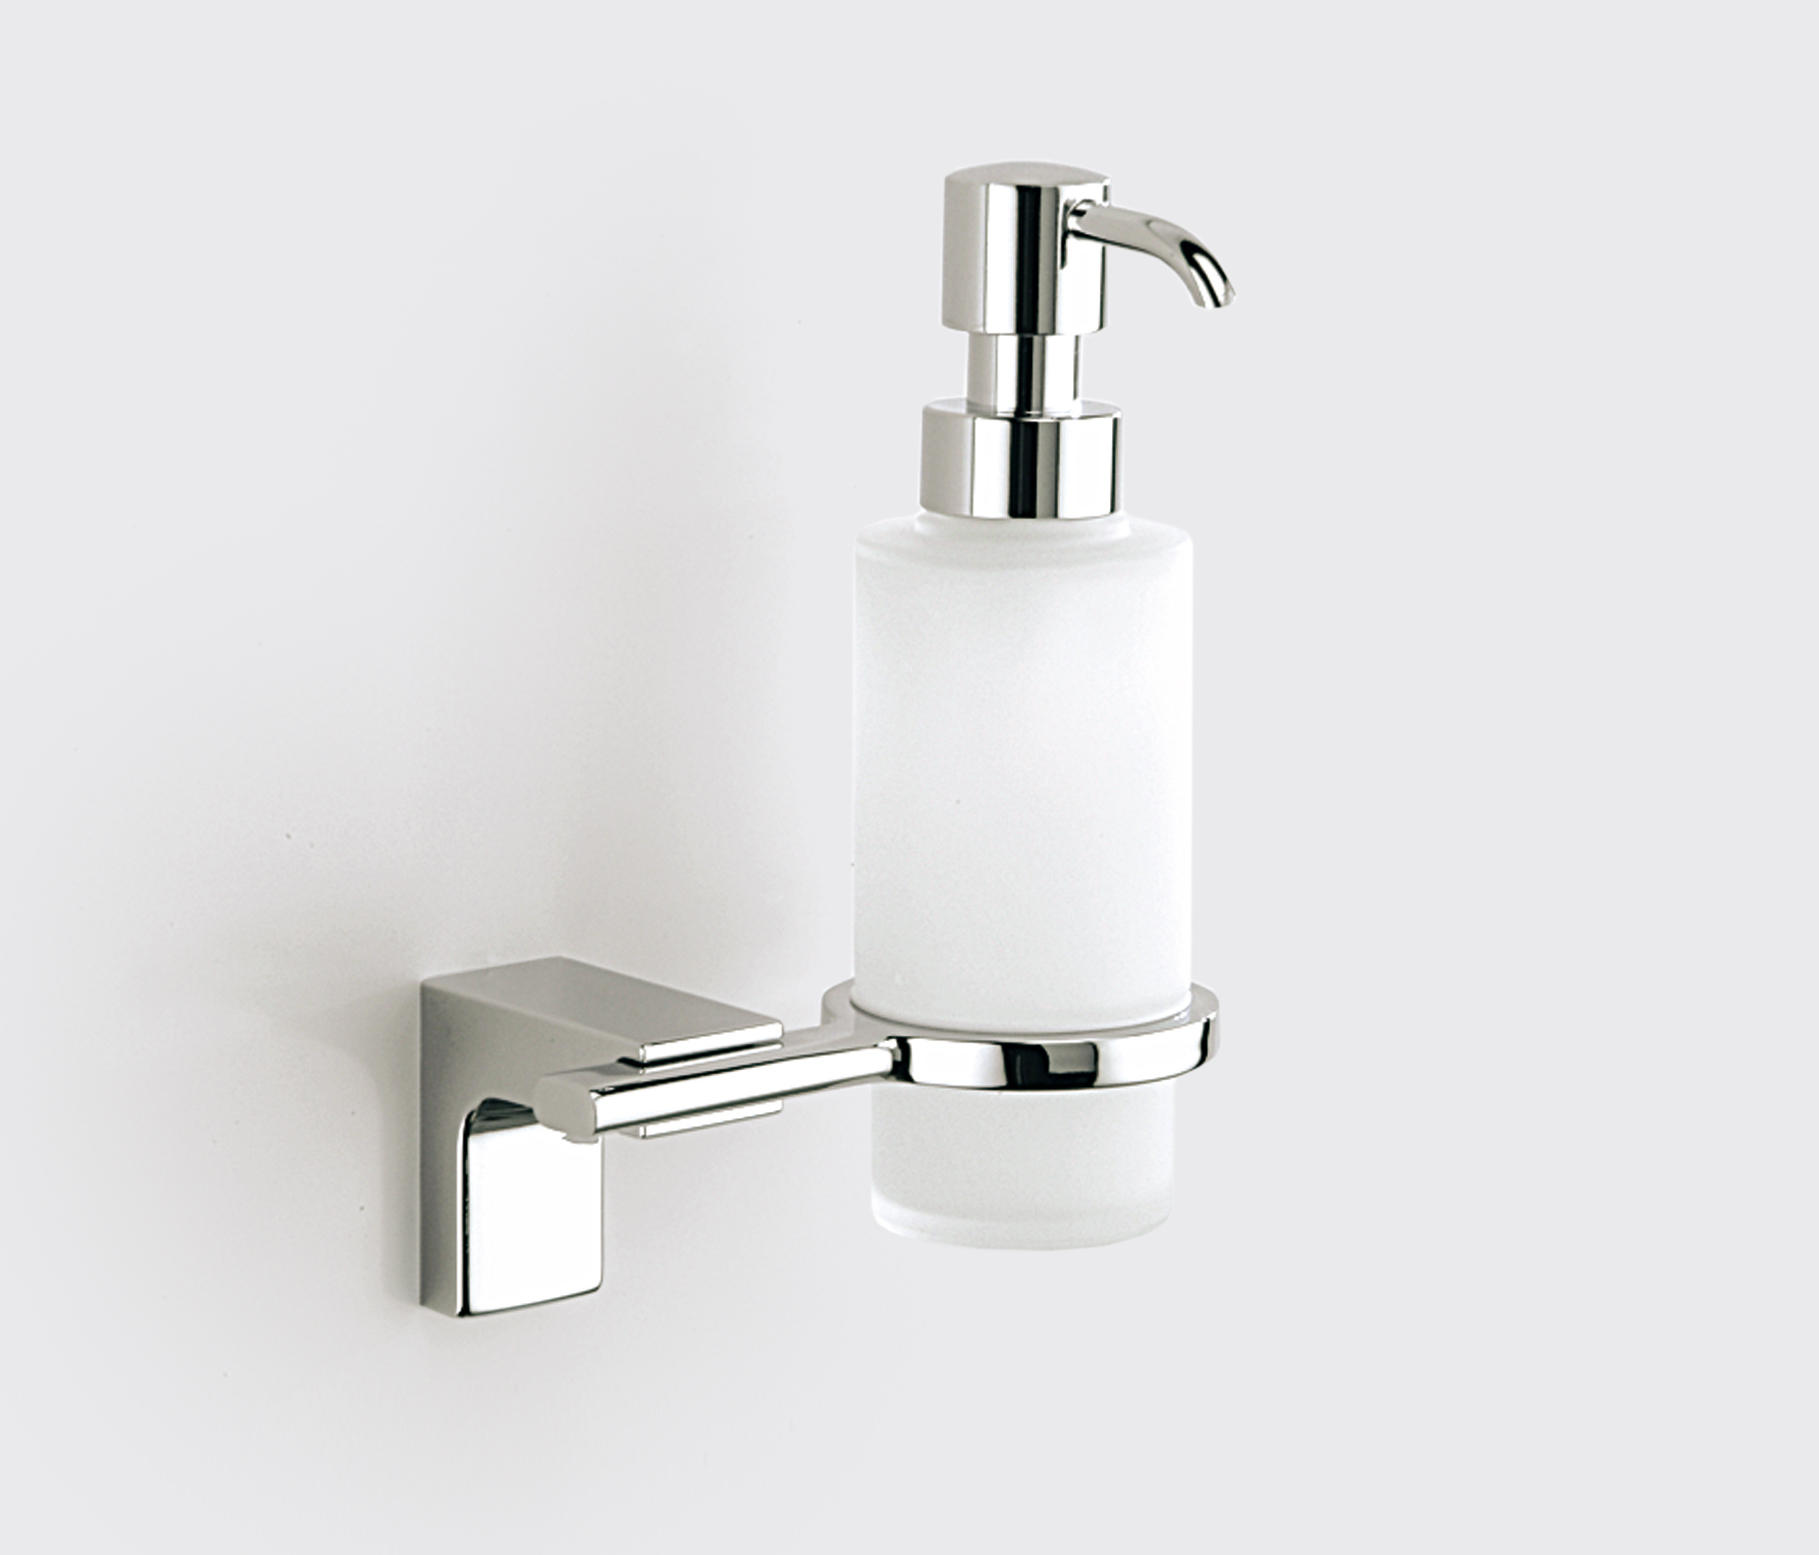 ELETECH SOAP DISPENSER - Soap dispensers from SONIA | Architonic